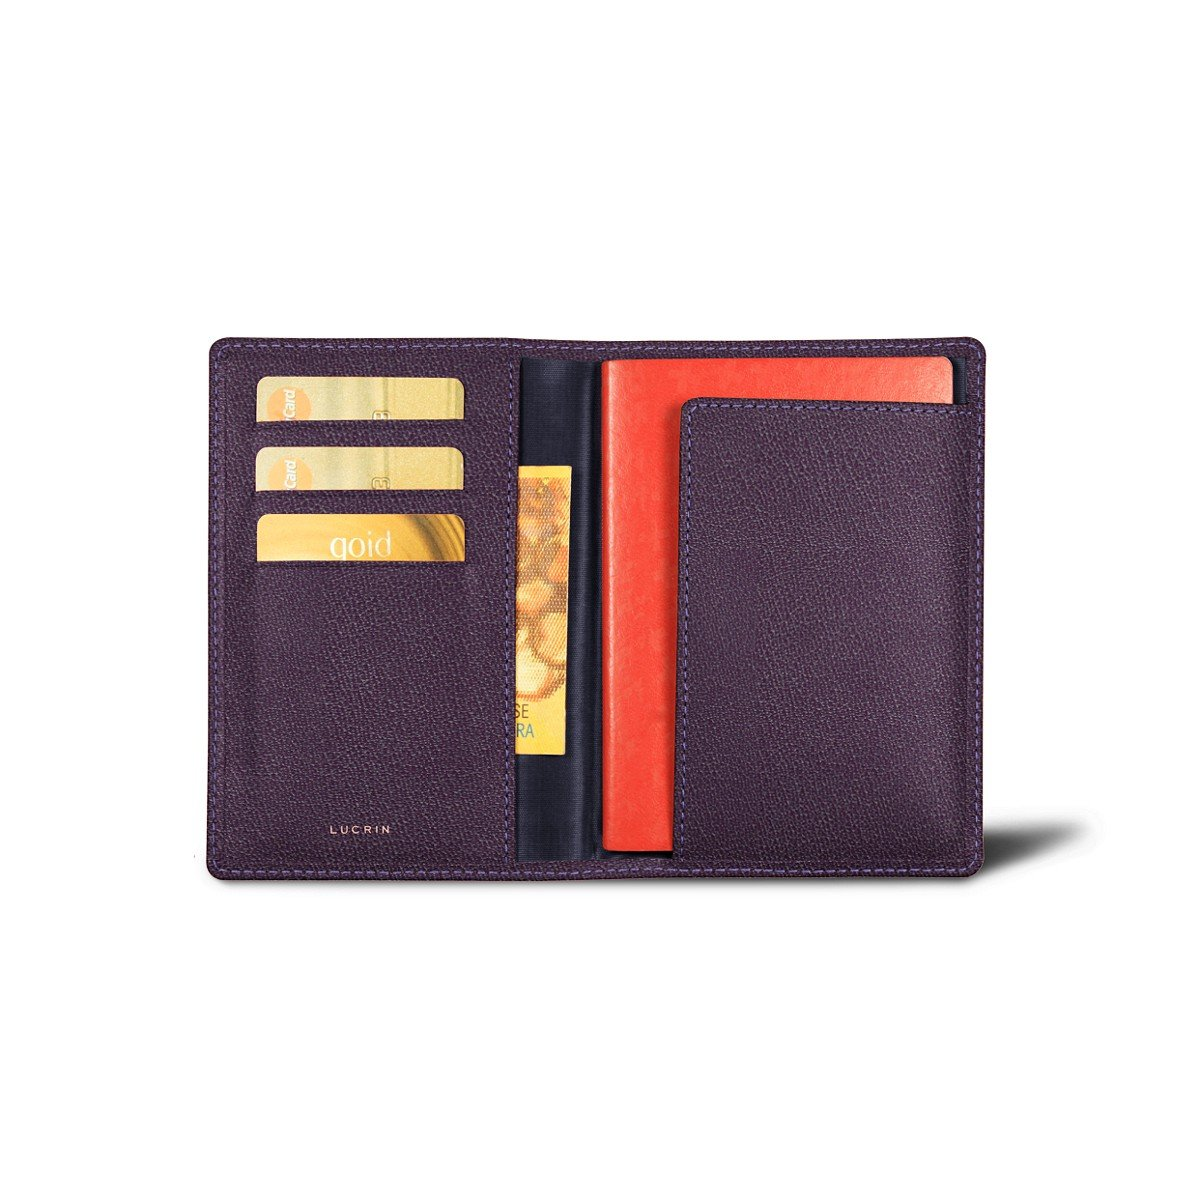 Lucrin - Passport and Loyalty Card Holder - Purple - Goat Leather